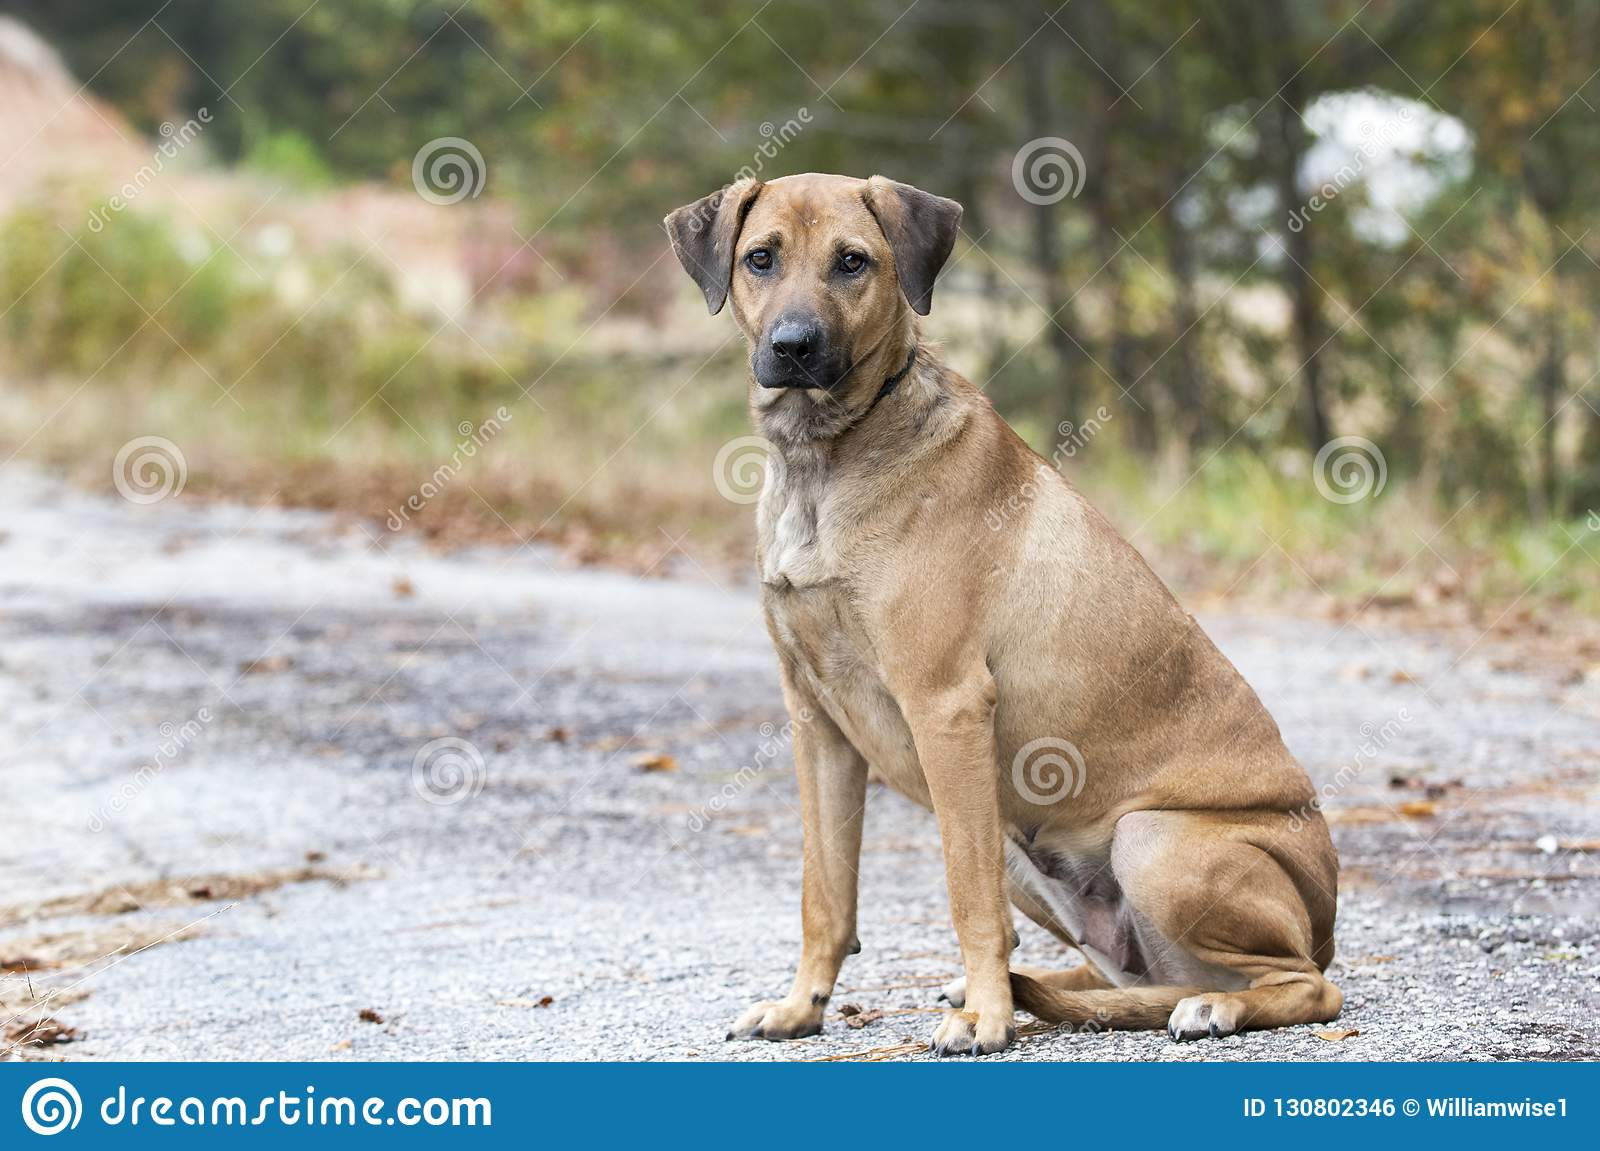 Lost Dog On The Side Of The Road Stock Photo - Image of black